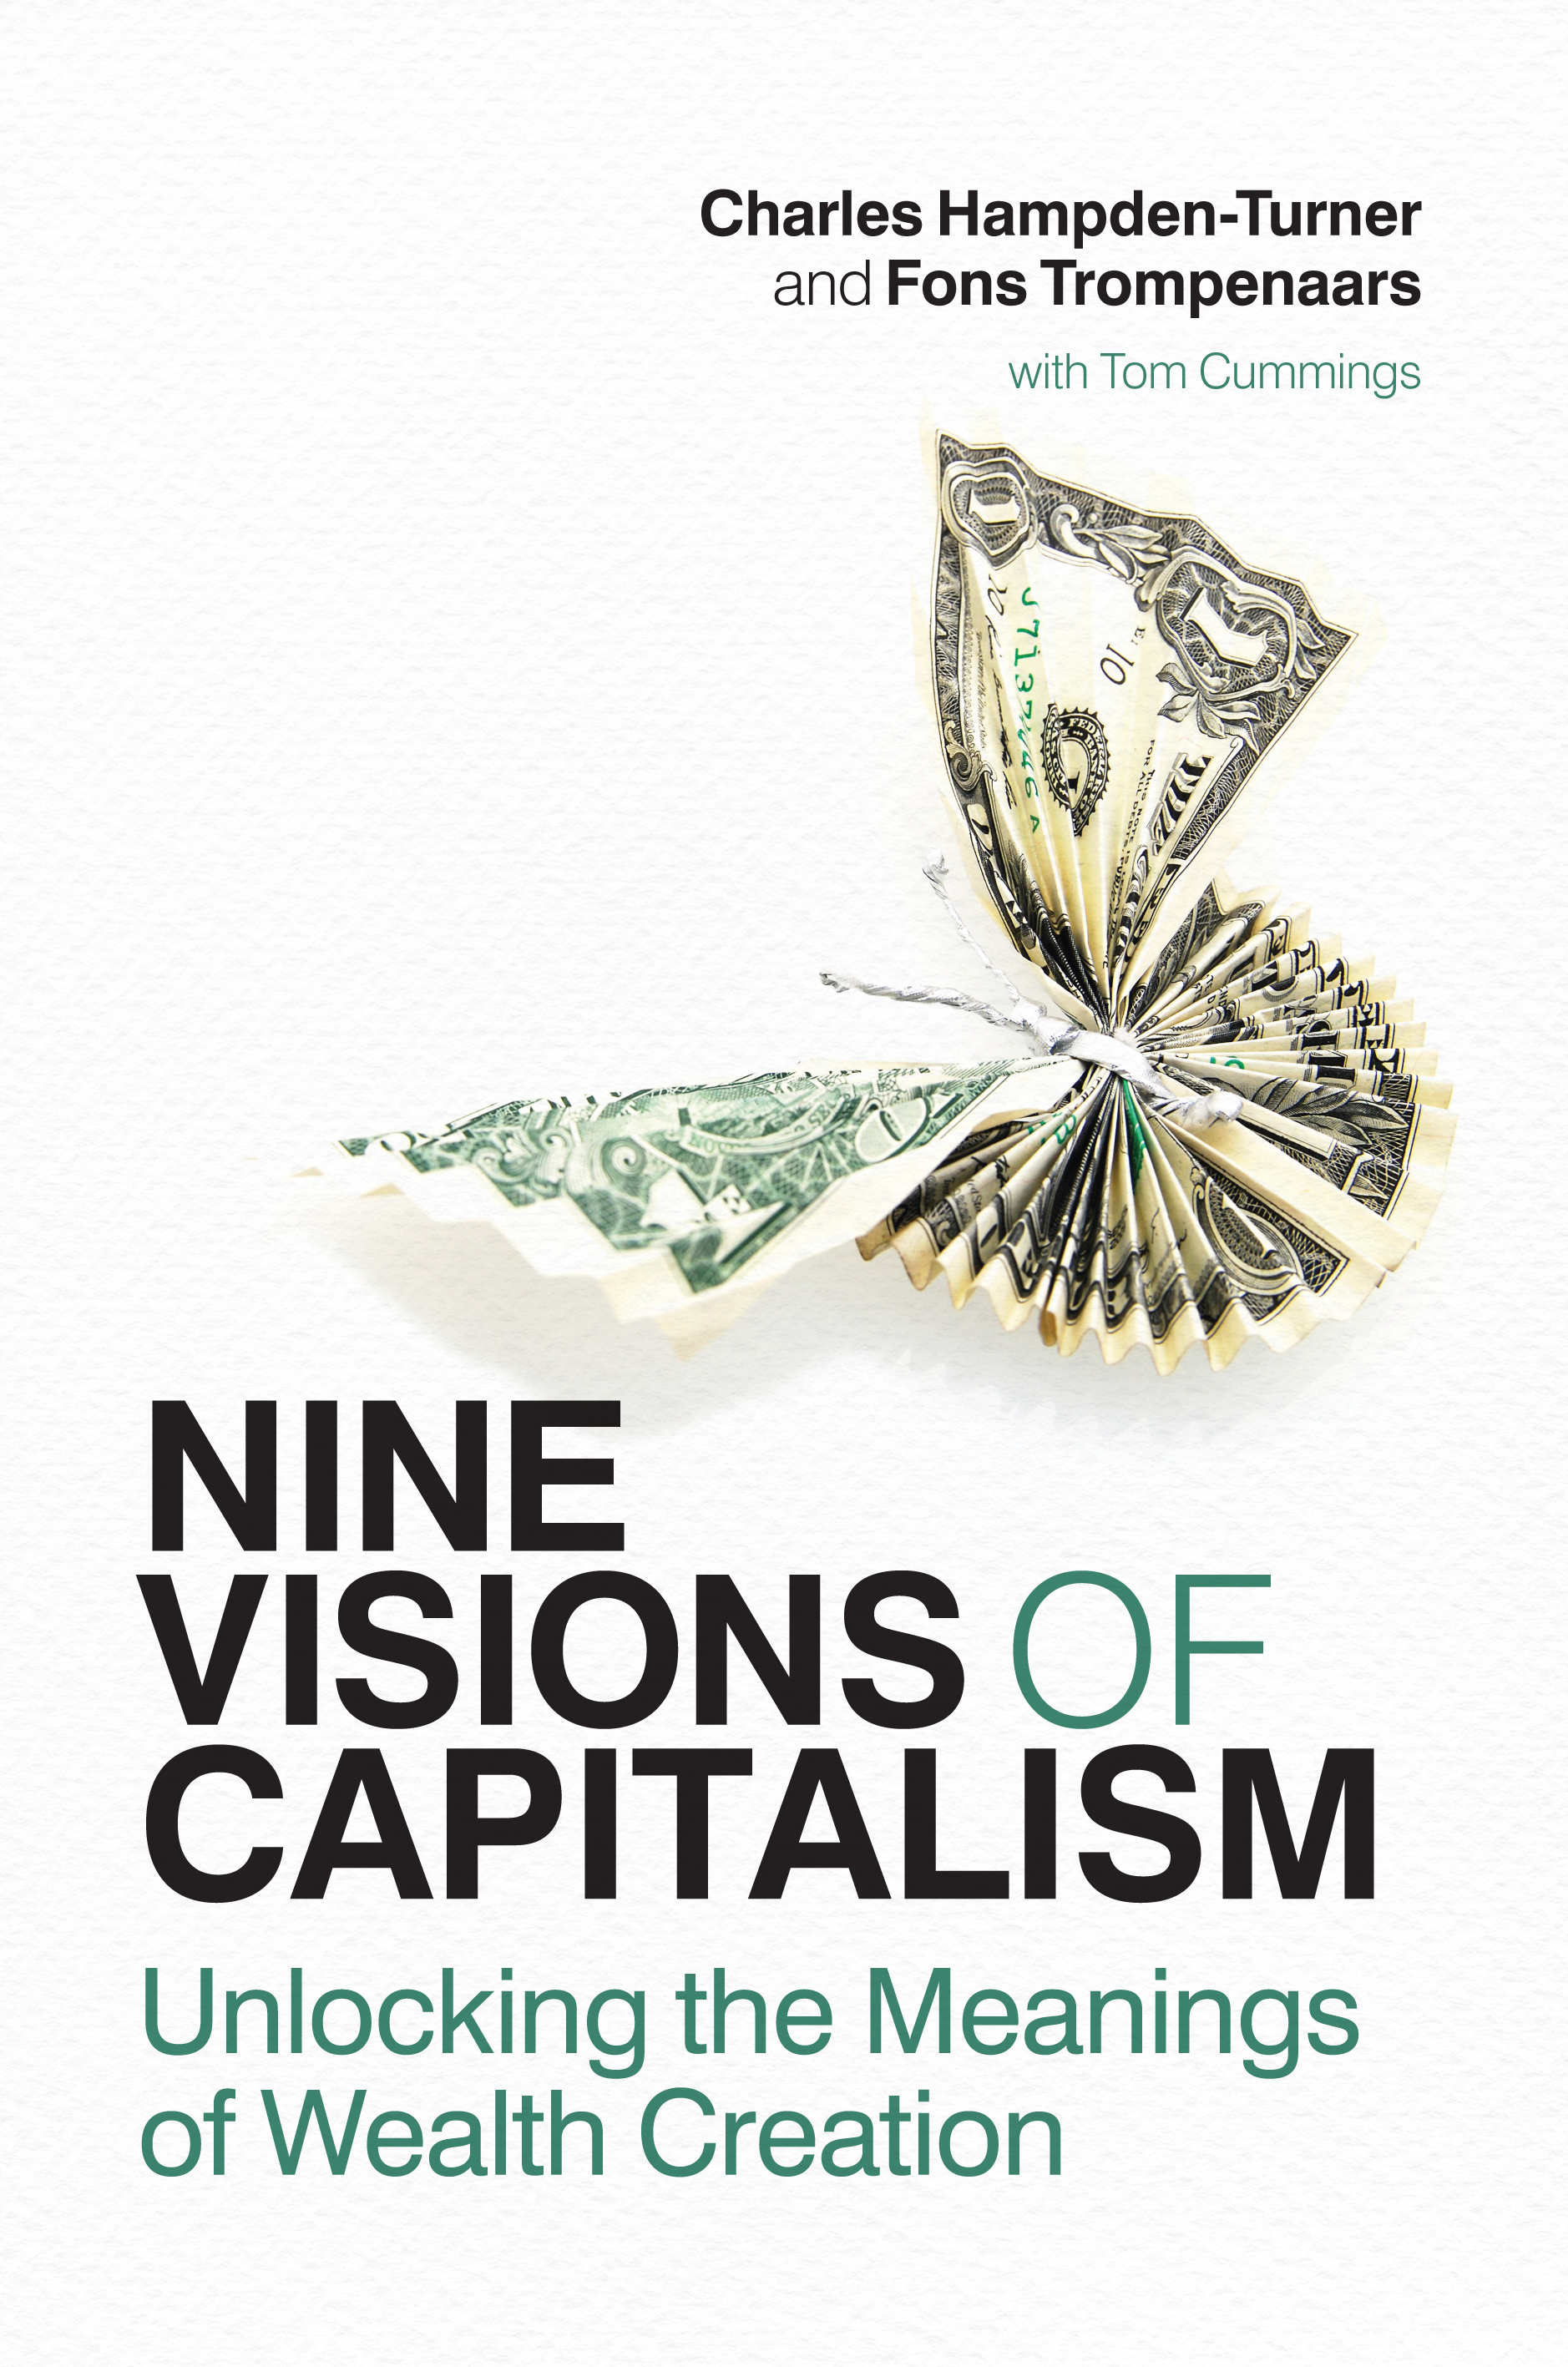 Nine visions of capitalism (coauthor)